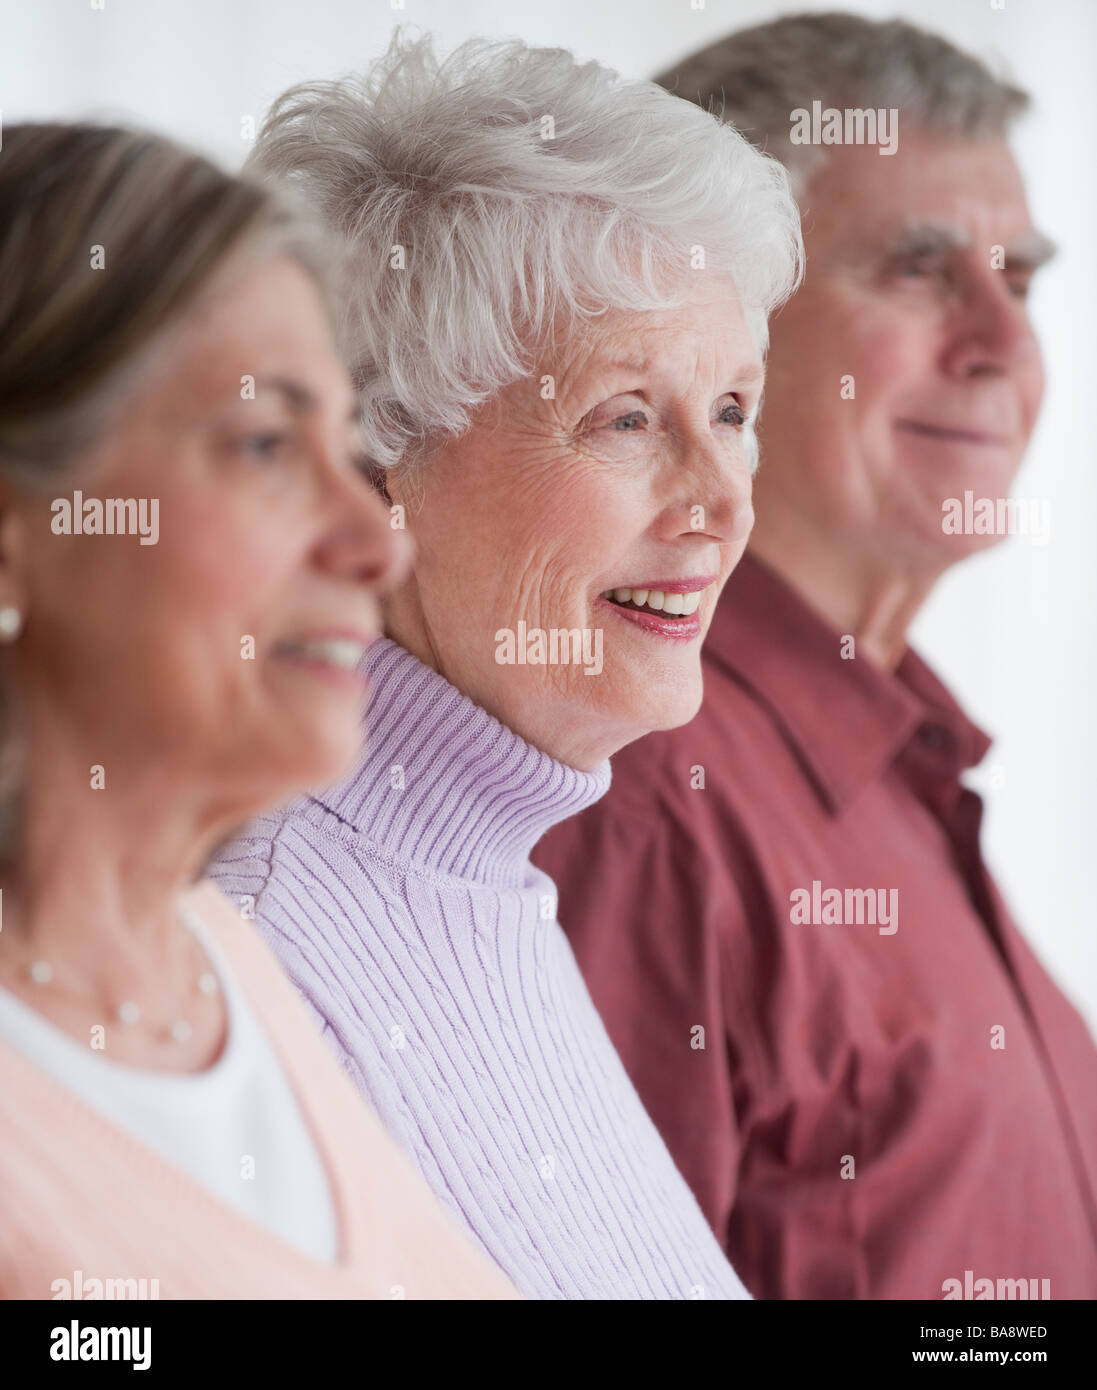 Portrait of senior adults - Stock Image